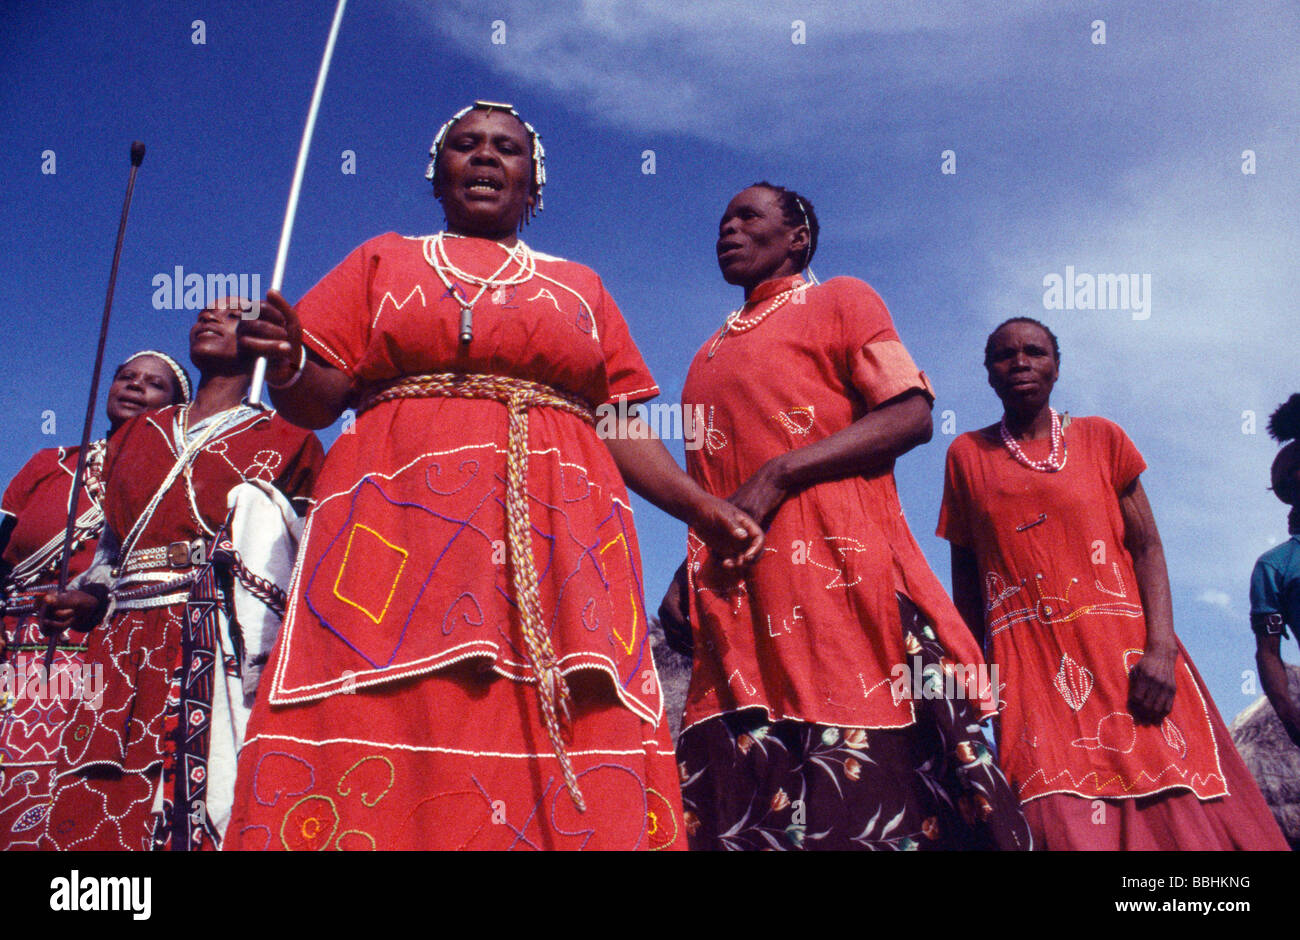 Basotho Women In Traditional Dress Lesotho Stock Photo, Picture And ...: www.alamy.com/stock-photo-basotho-women-in-traditional-dress...